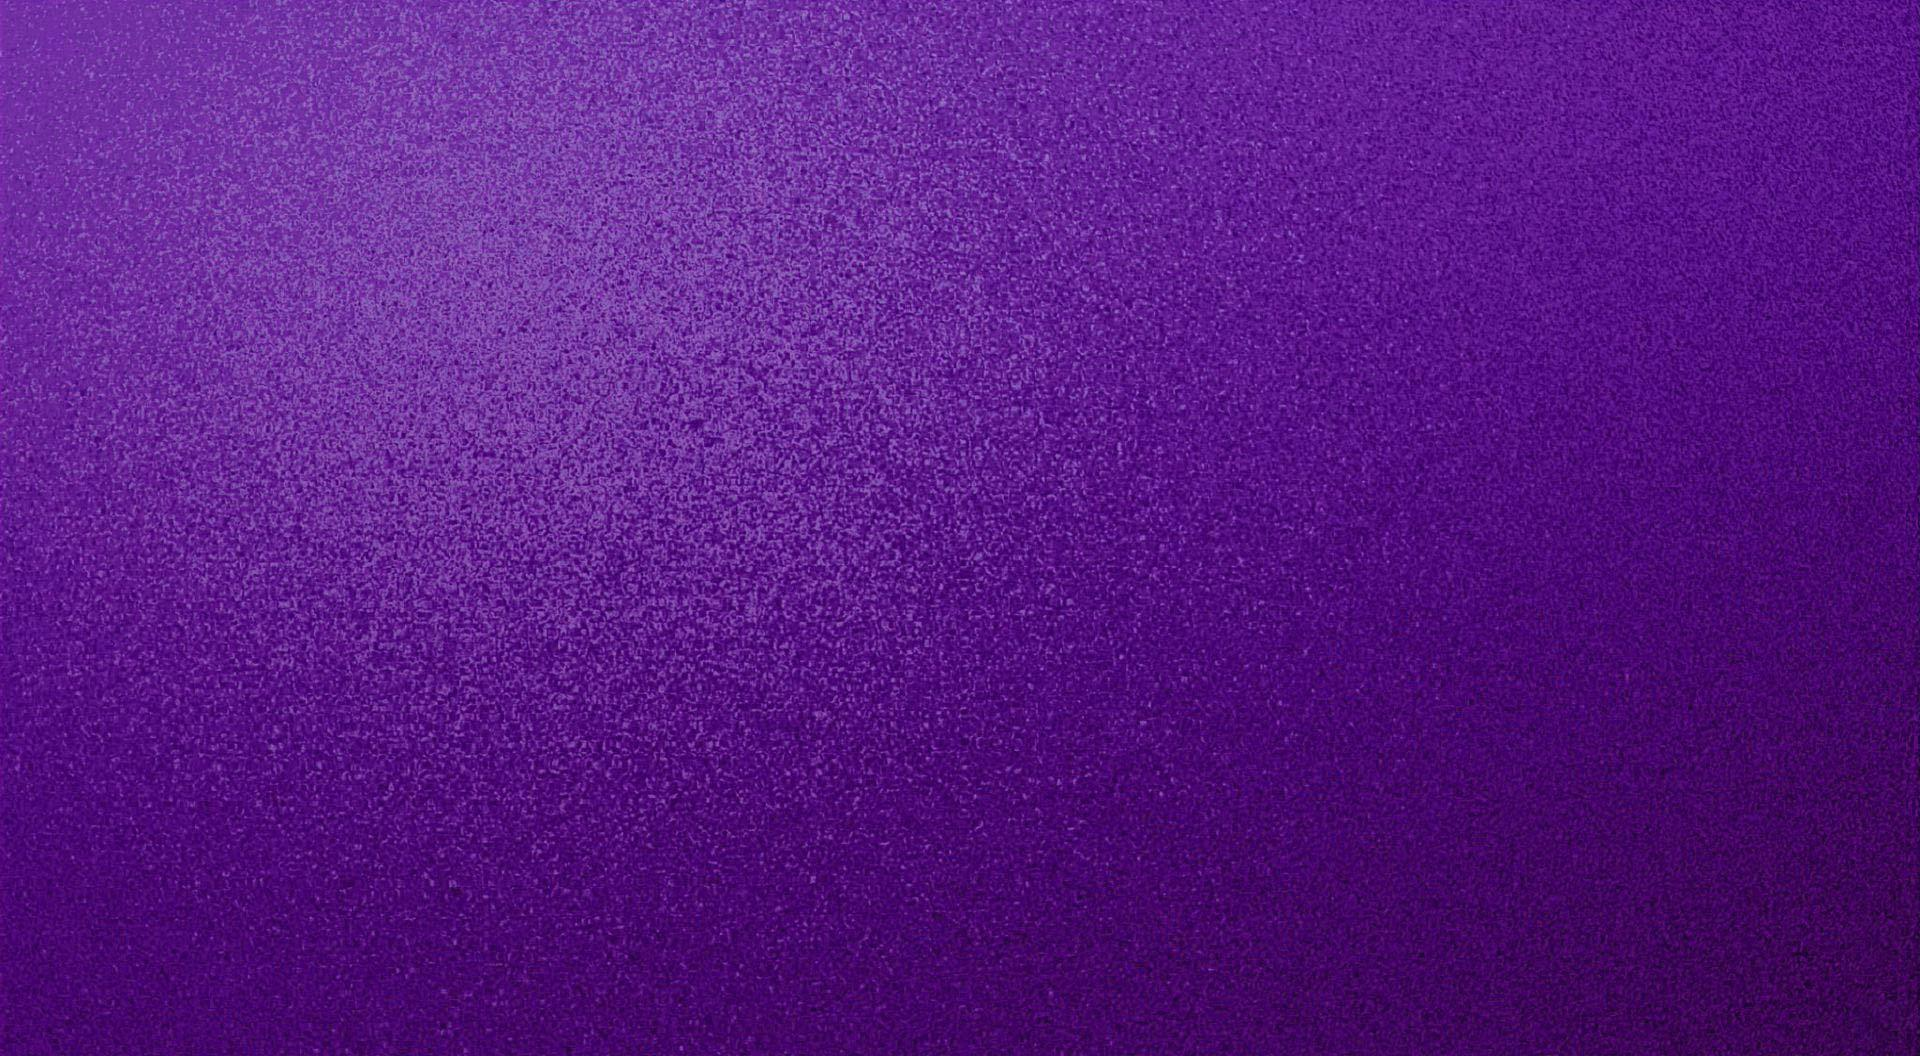 lavender color wallpaper hd - photo #26